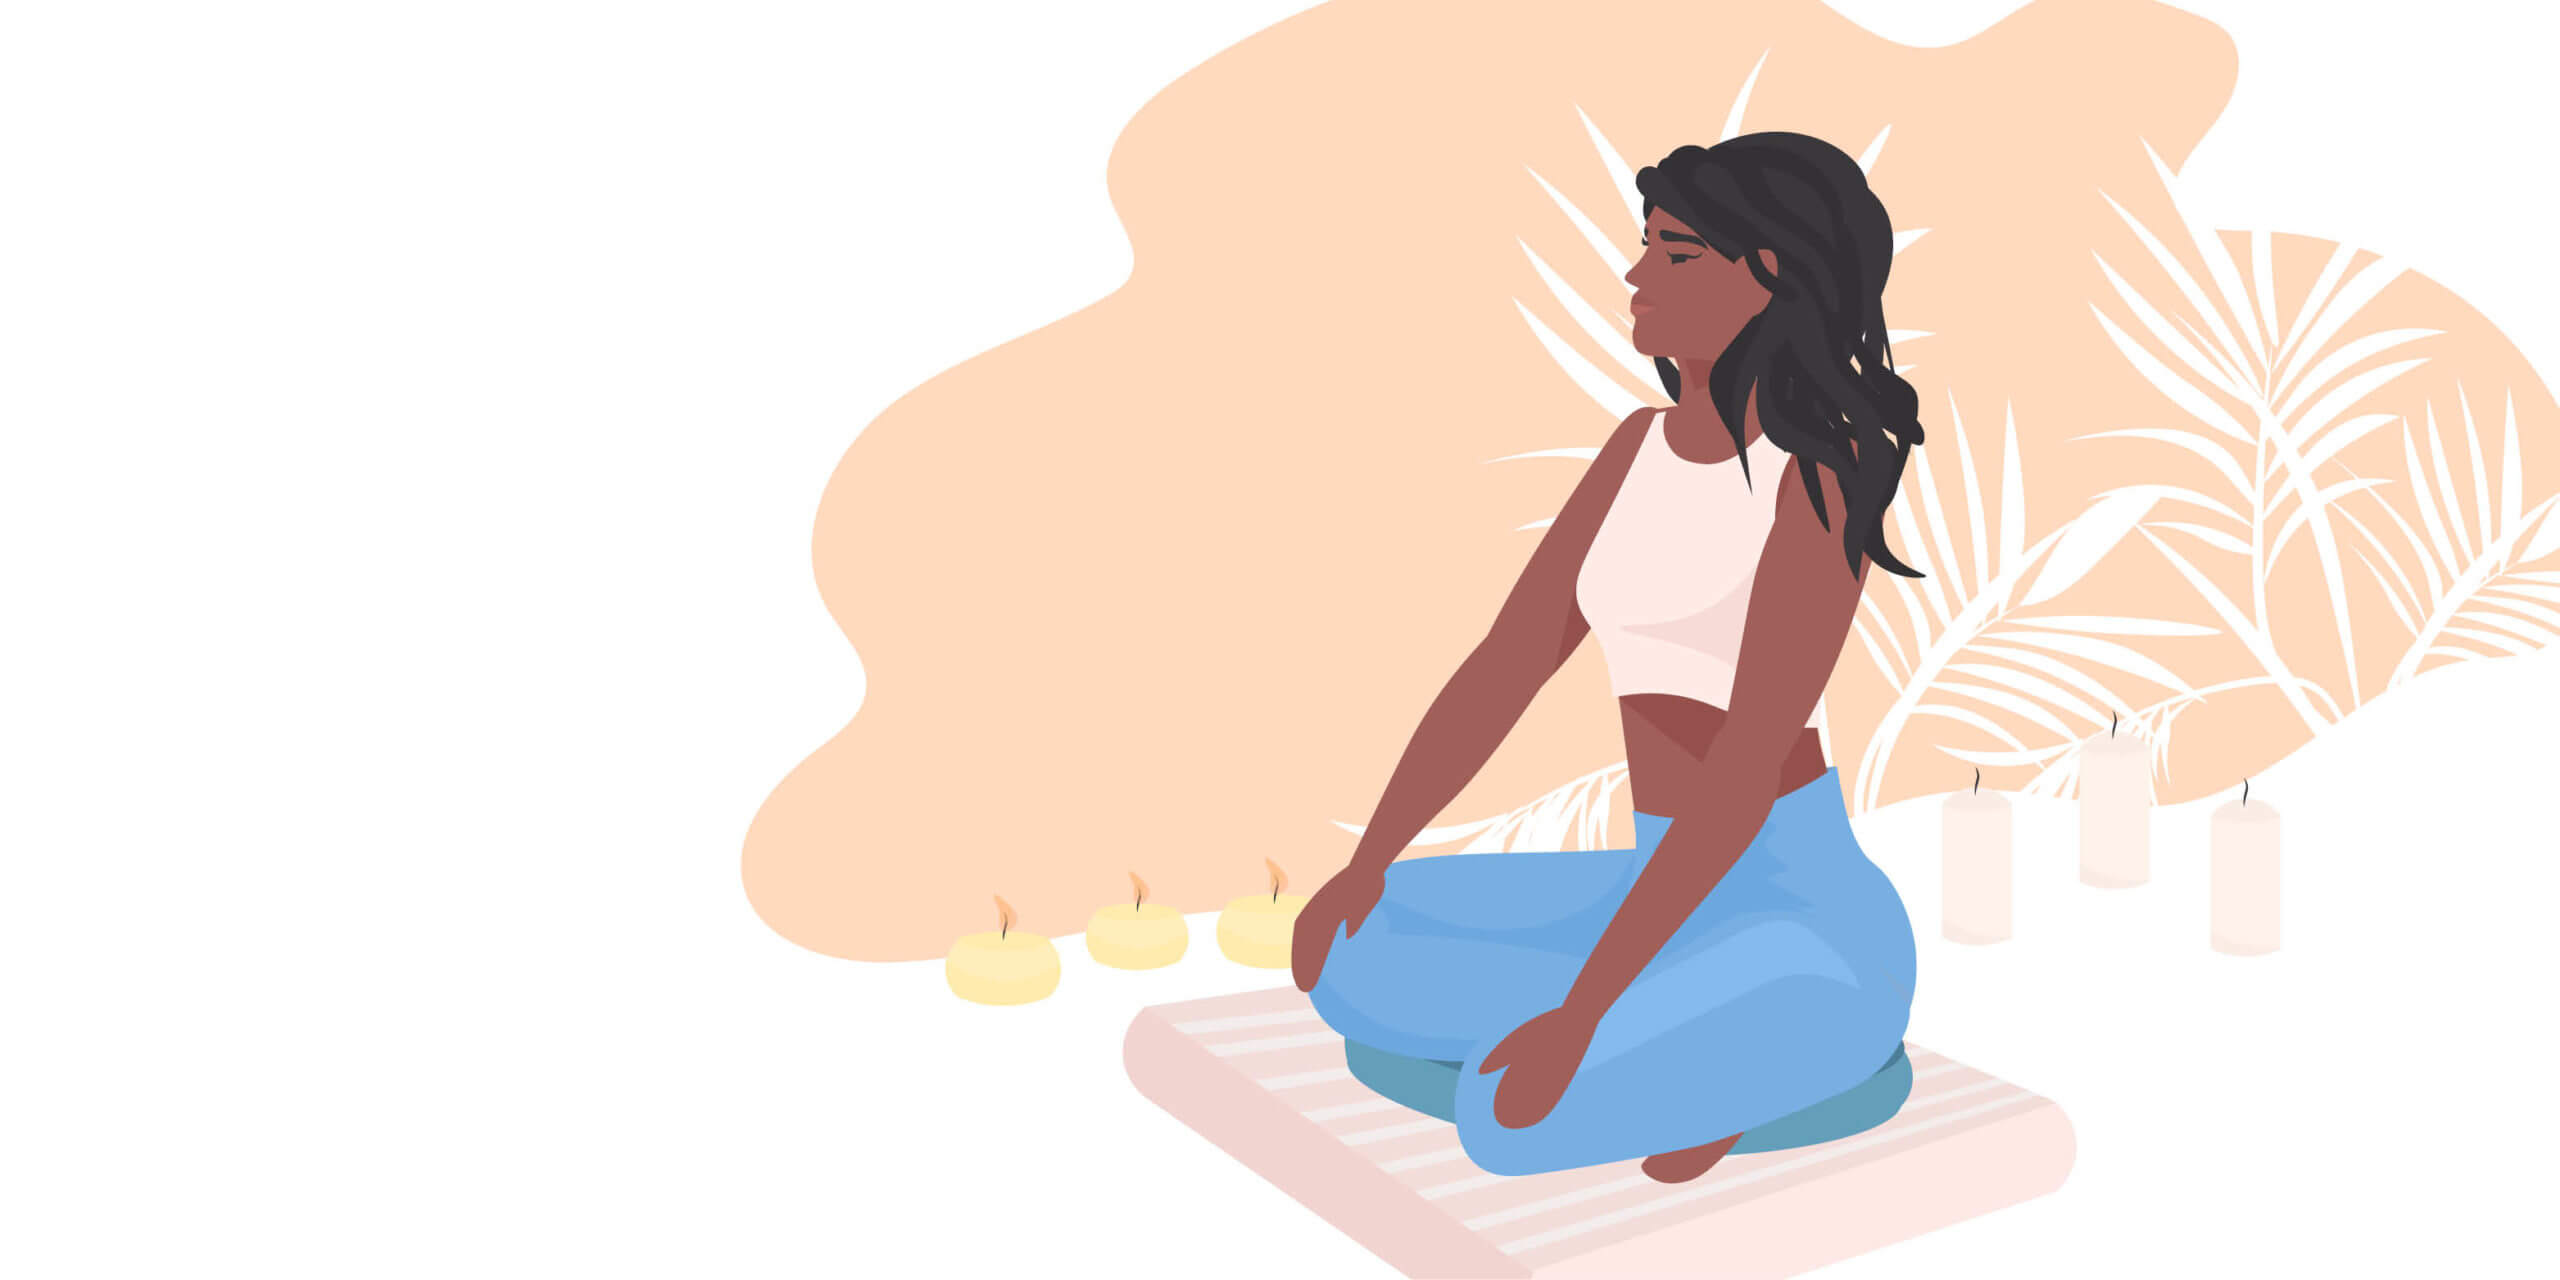 stylized illustration of an African American teen girl sitting in lotus pose on a meditation pillow. The background has a few candles and palm leaves.